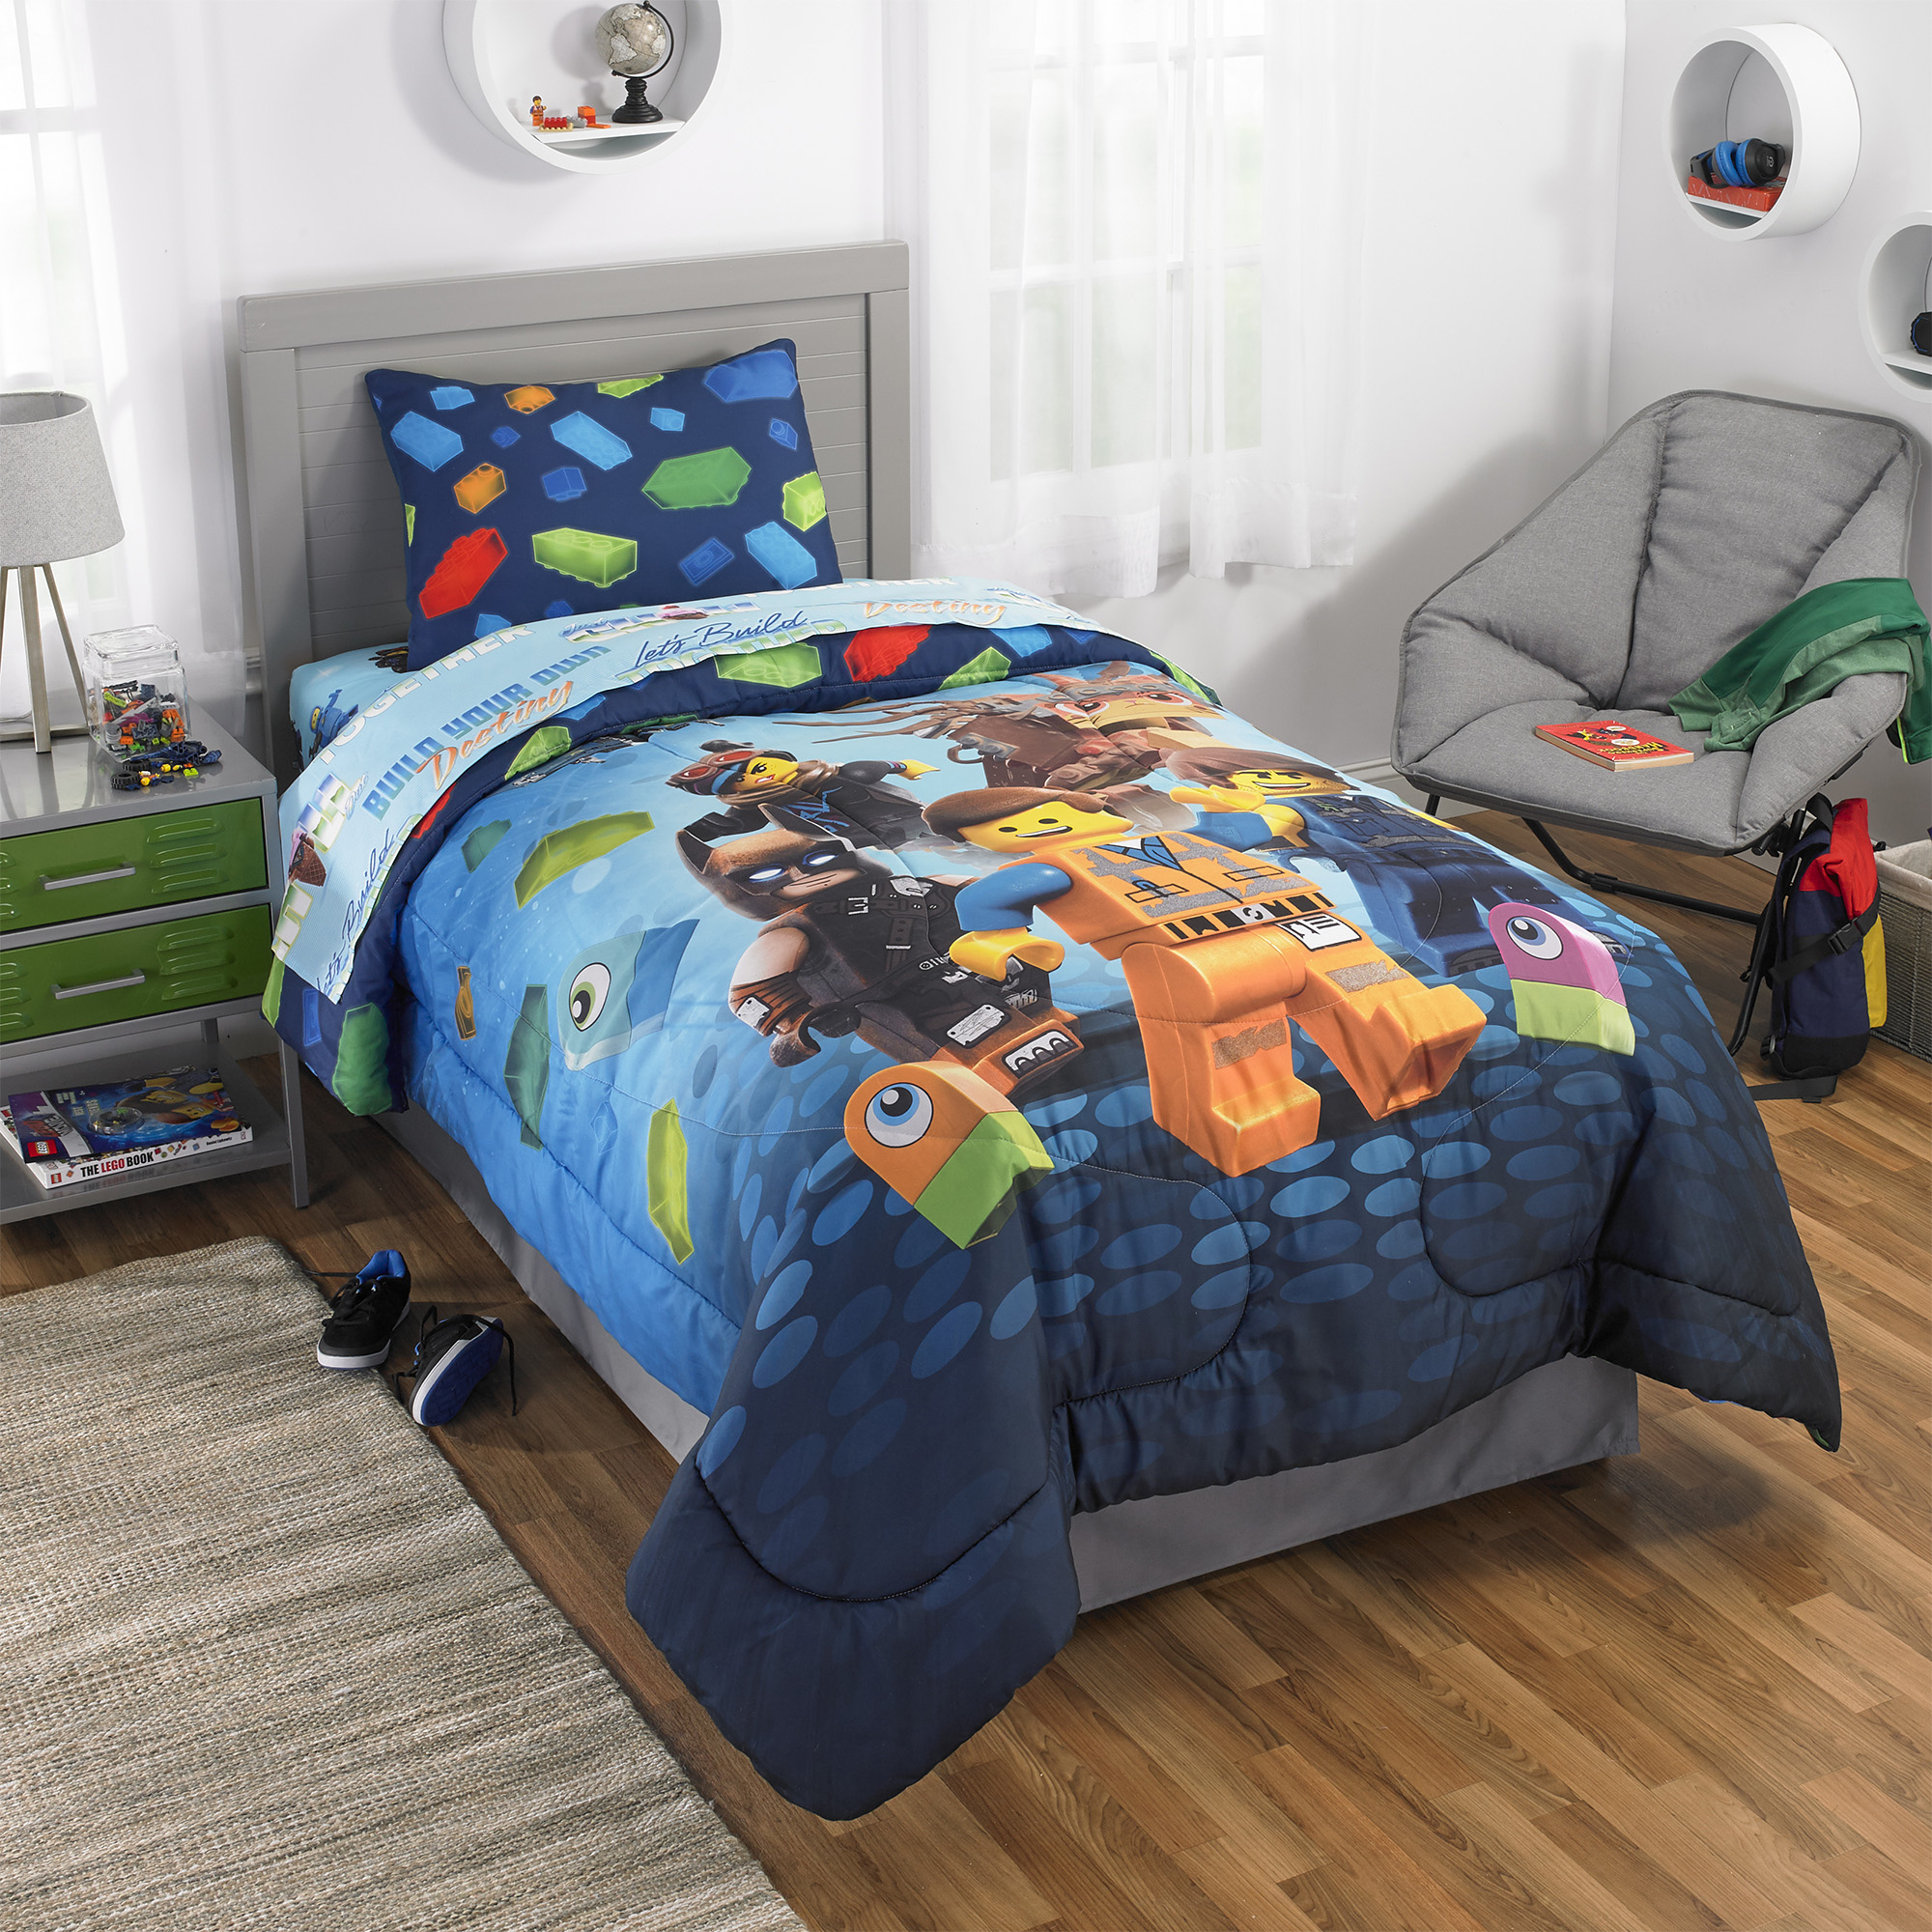 Lego Batman Kids Bedding Pillow Buddy 21 Tall Block Night Walmart Com Walmart Com